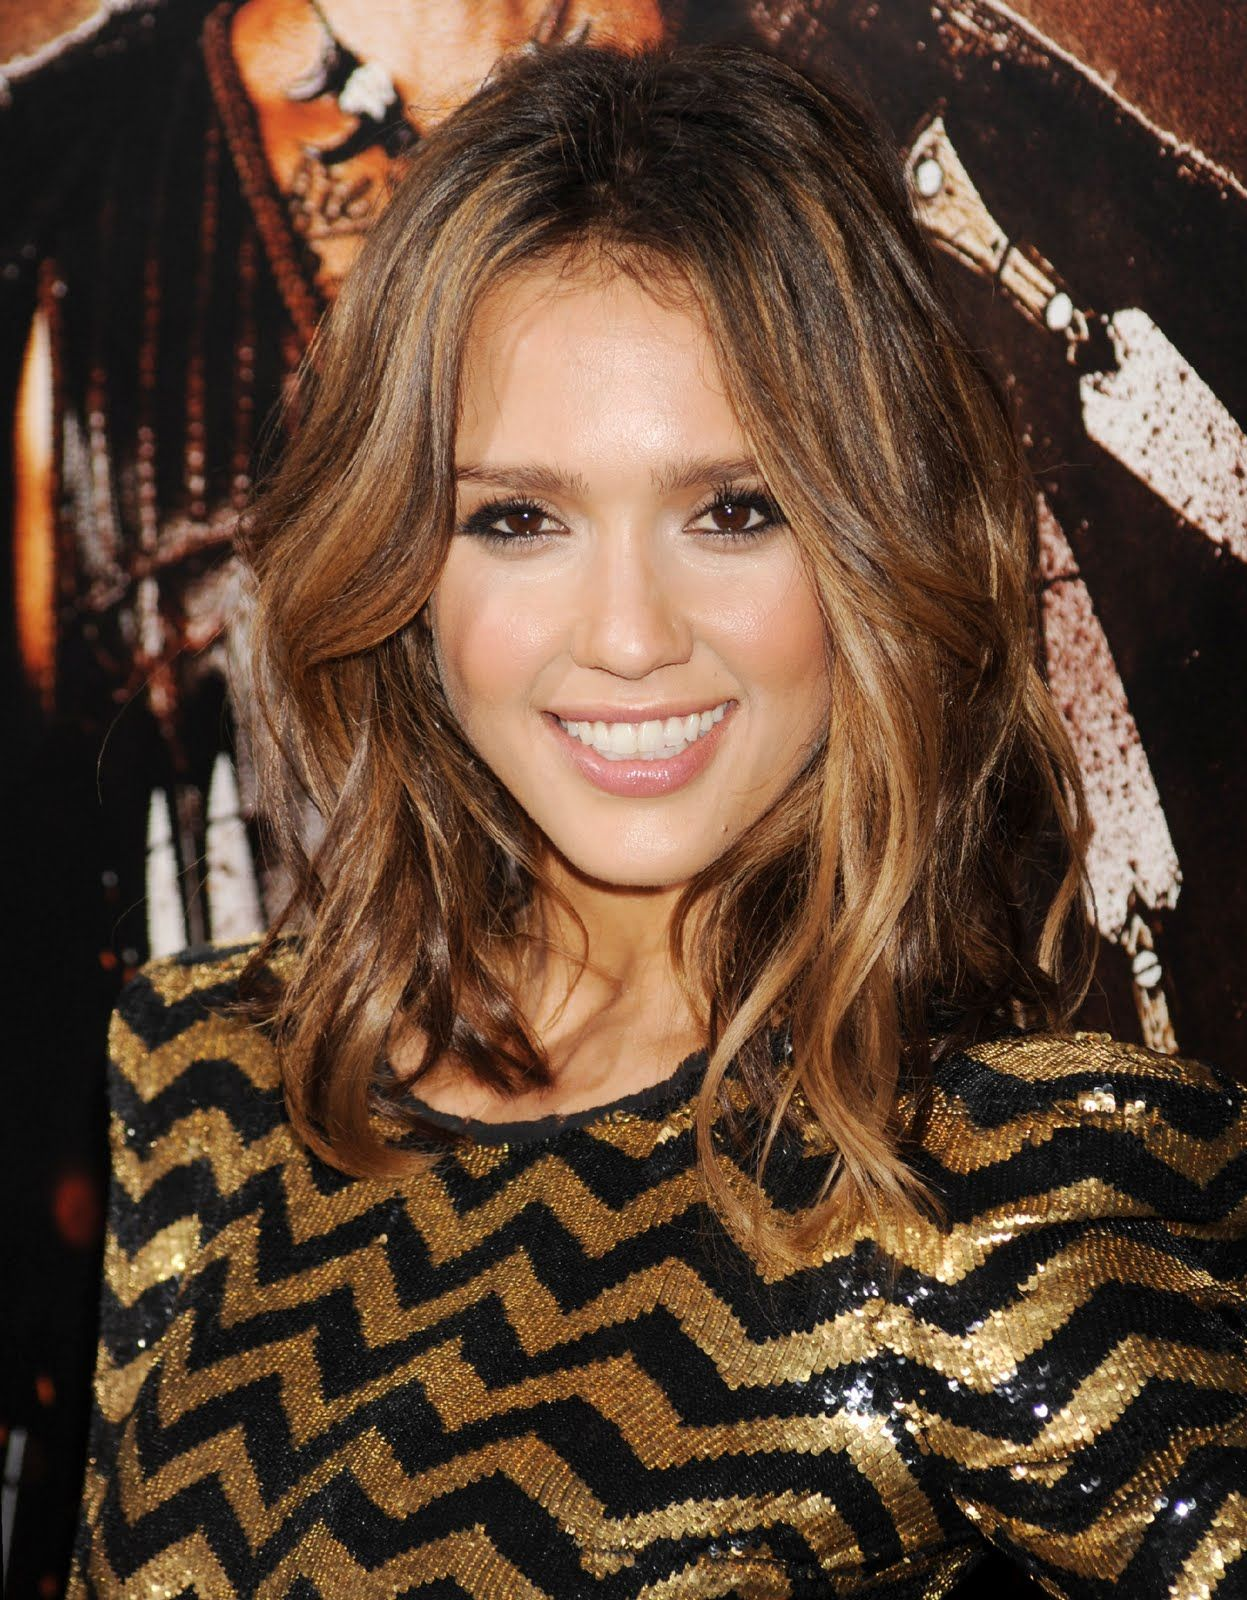 Black hair with blonde ends - Brown Hair With Blonde Highlights Dip Dye Jessica Alba With Dark Brown Hair